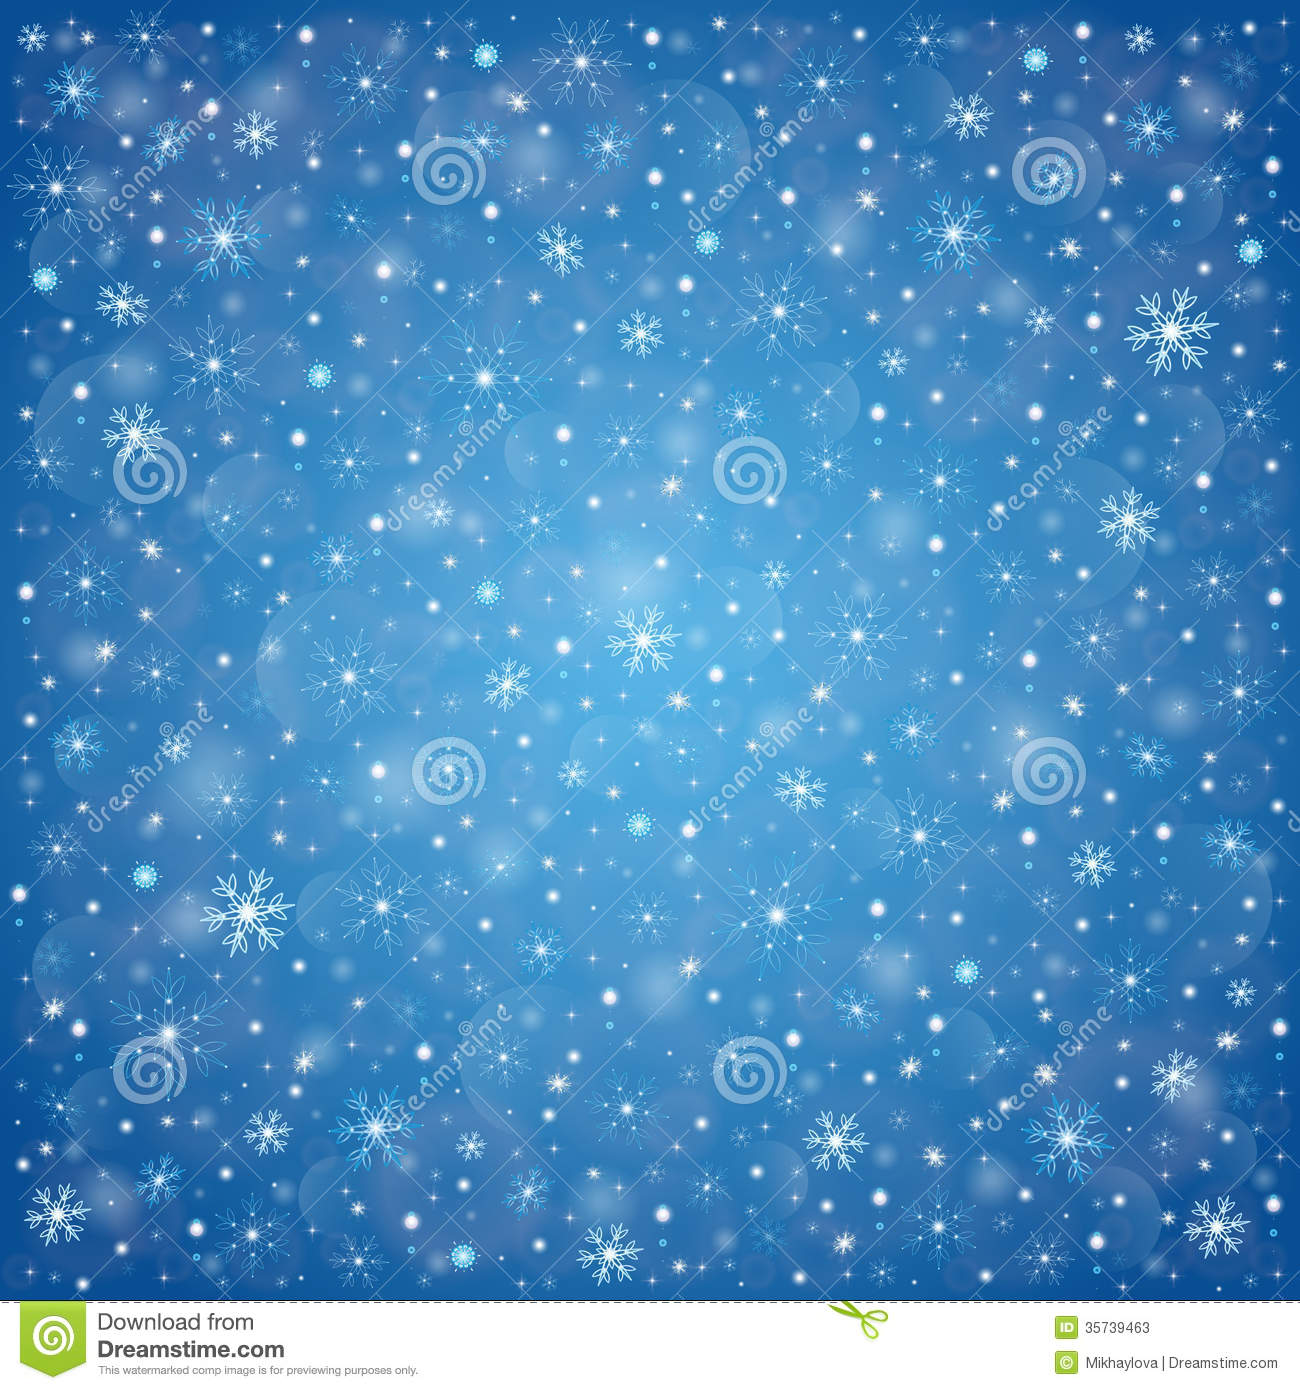 Free Christmas Falling Snow Wallpaper Winter Frosty Snow Background Stock Vector Illustration